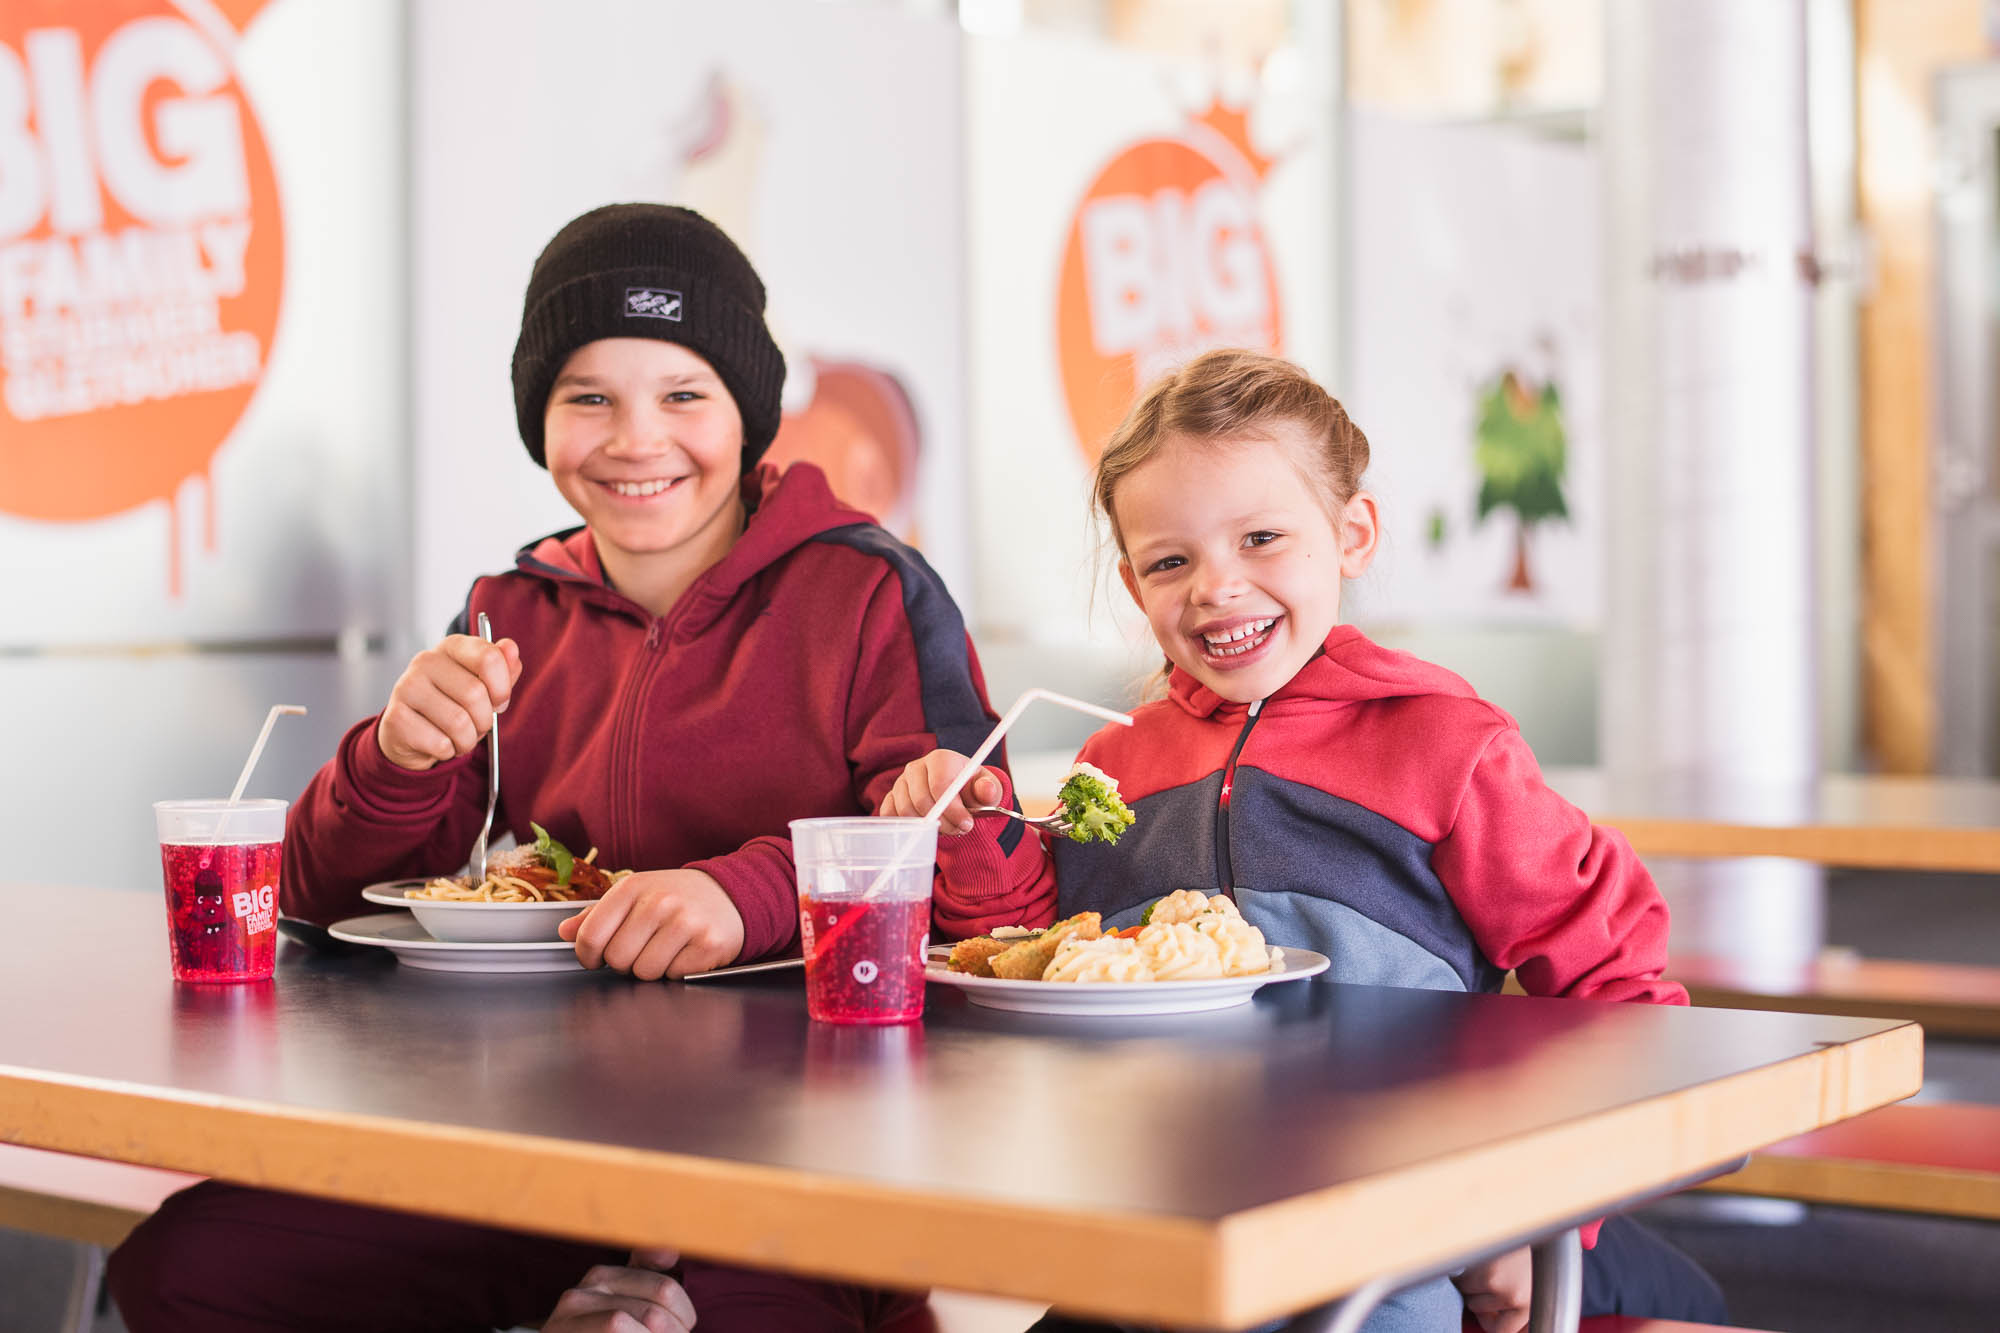 Children's restaurant - Stubai Glacier family ski area